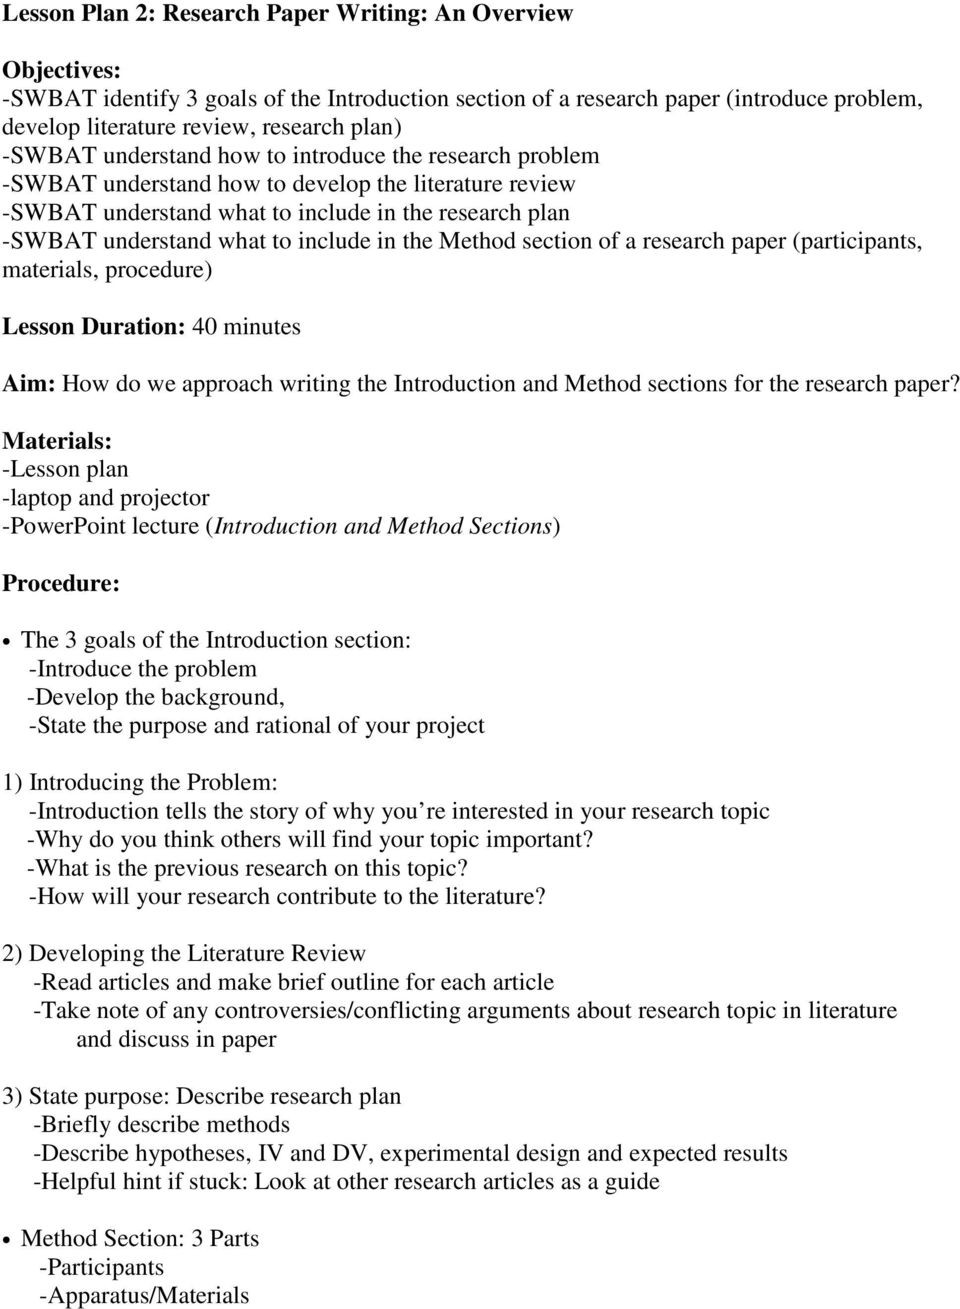 022 Research Paper Methods Section In Page 16 Sensational A Results Of Scientific Apa Example Pdf 960